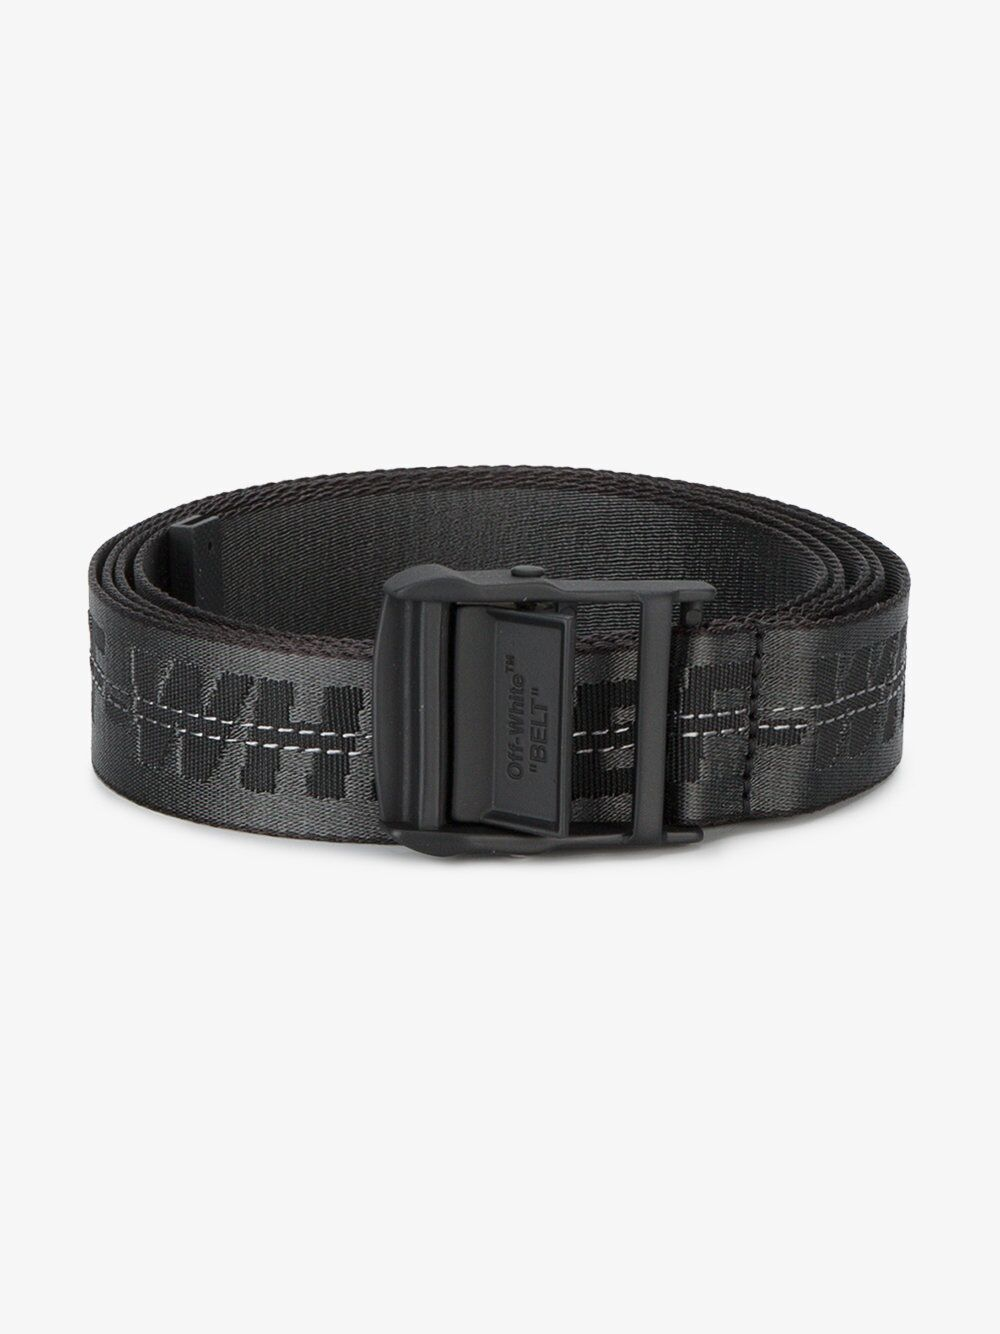 【関税送料込】17FW★OFF WHITE ★Industrial oversized belt